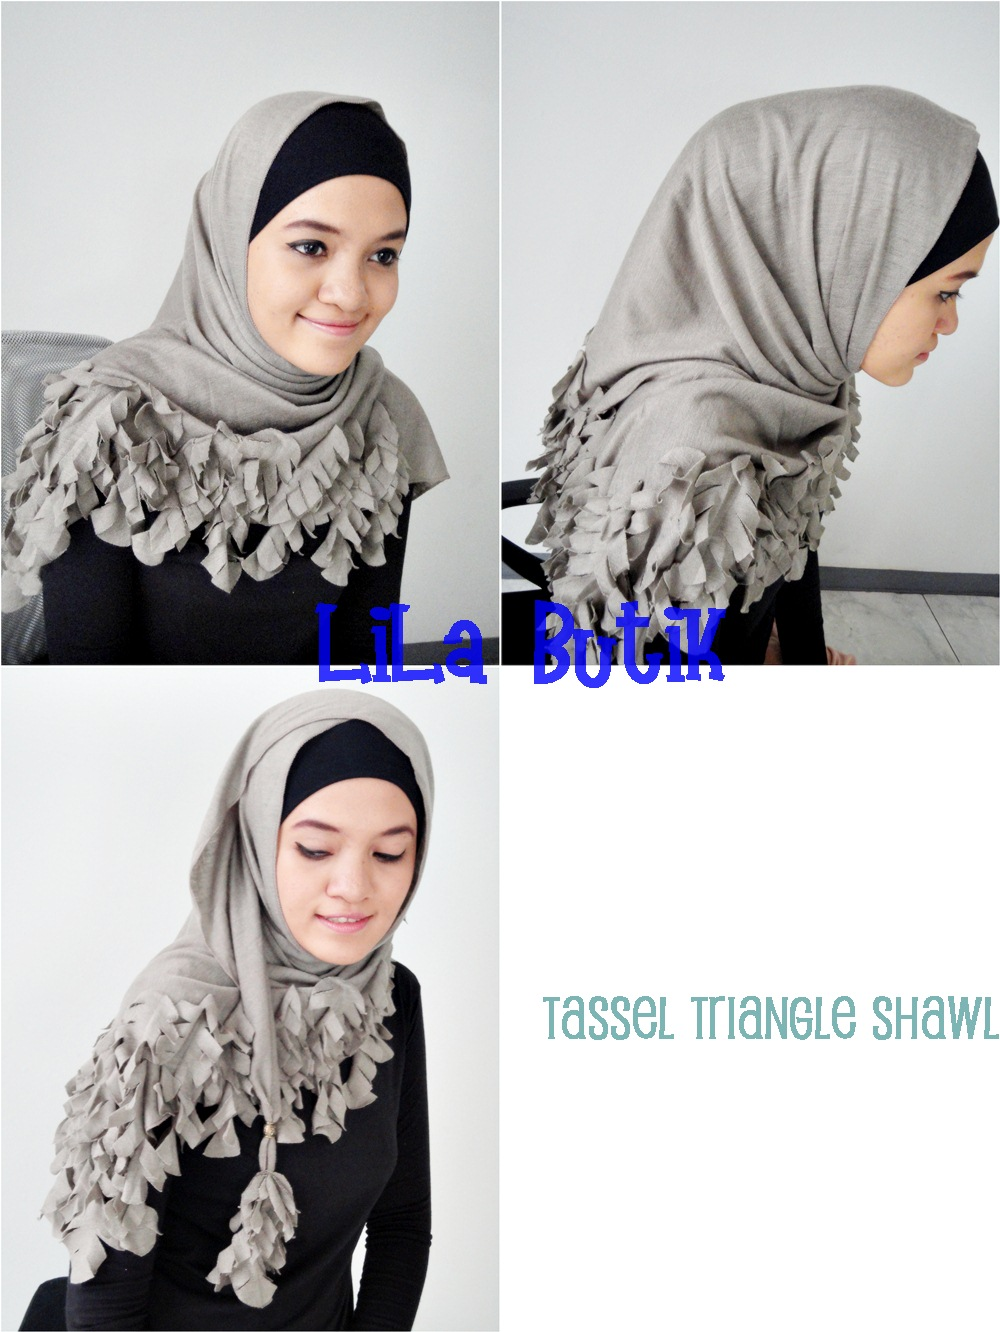 tassel-shawl LiLa Butik: Me and My Friend's On-and-Off Online Shop (^____^)v